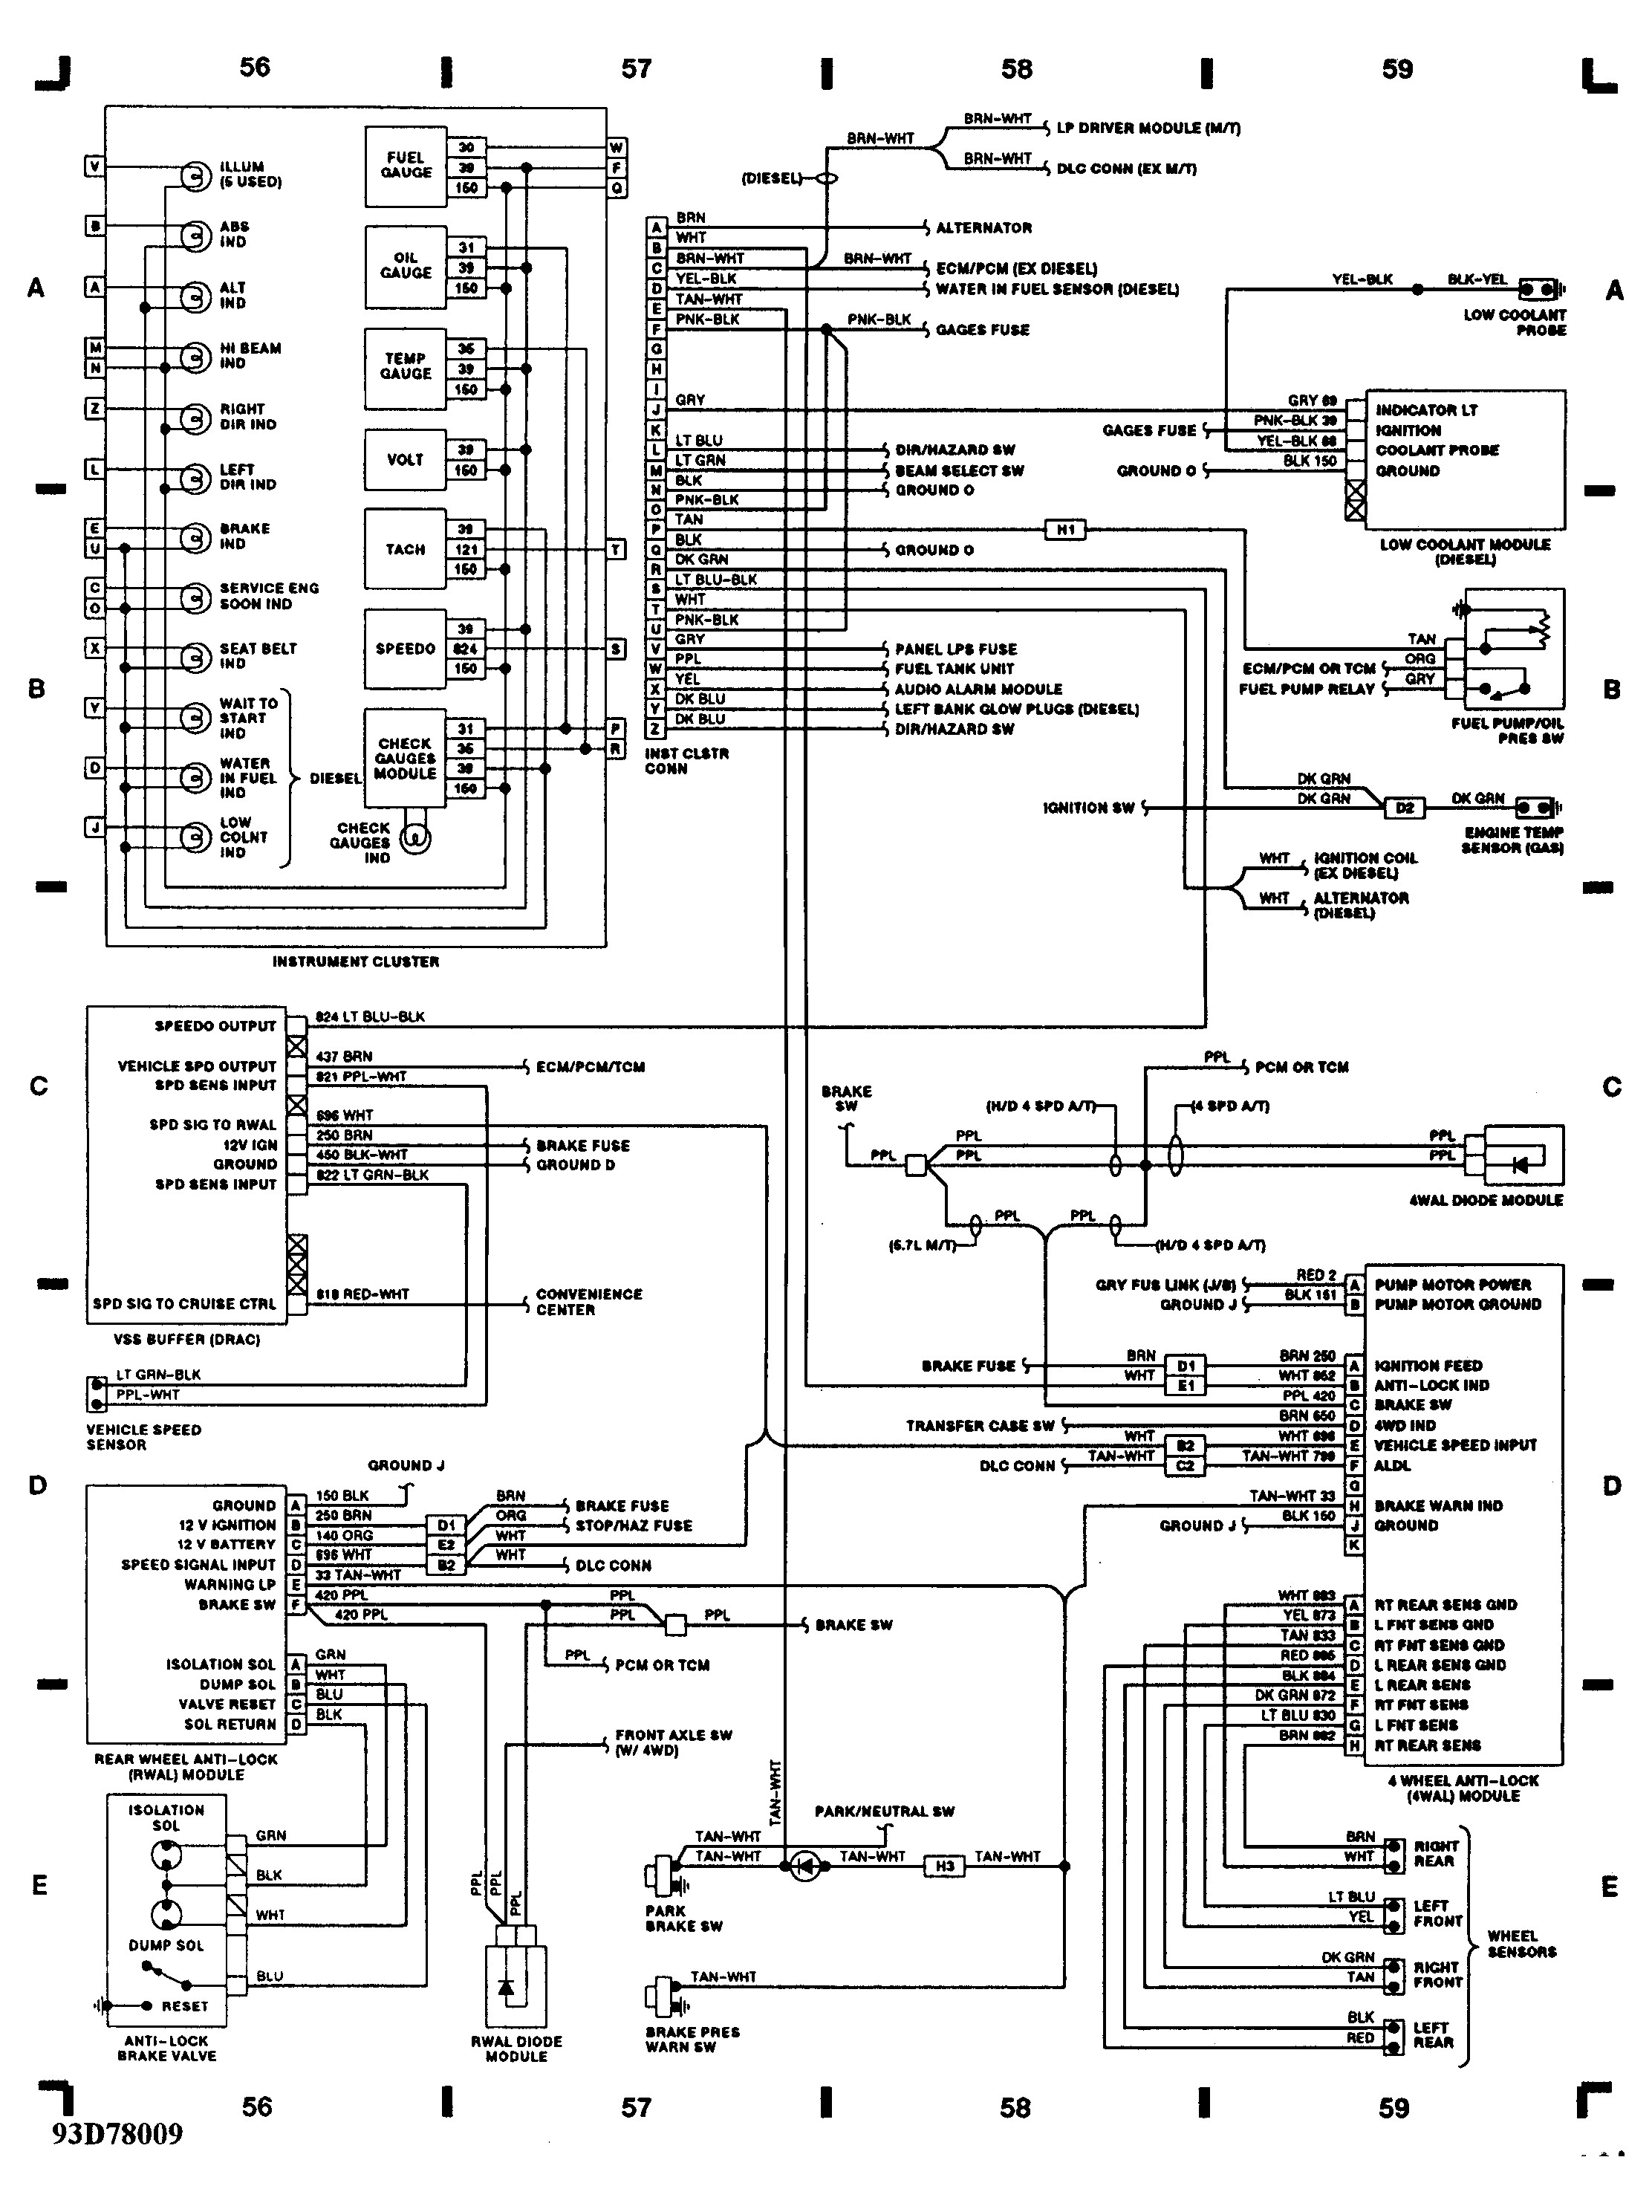 Cat 3126 Ecm Wiring Diagram Free Download Caterpillar D1256 Diagrams U2022 Rh Wiringdiagramblog Today